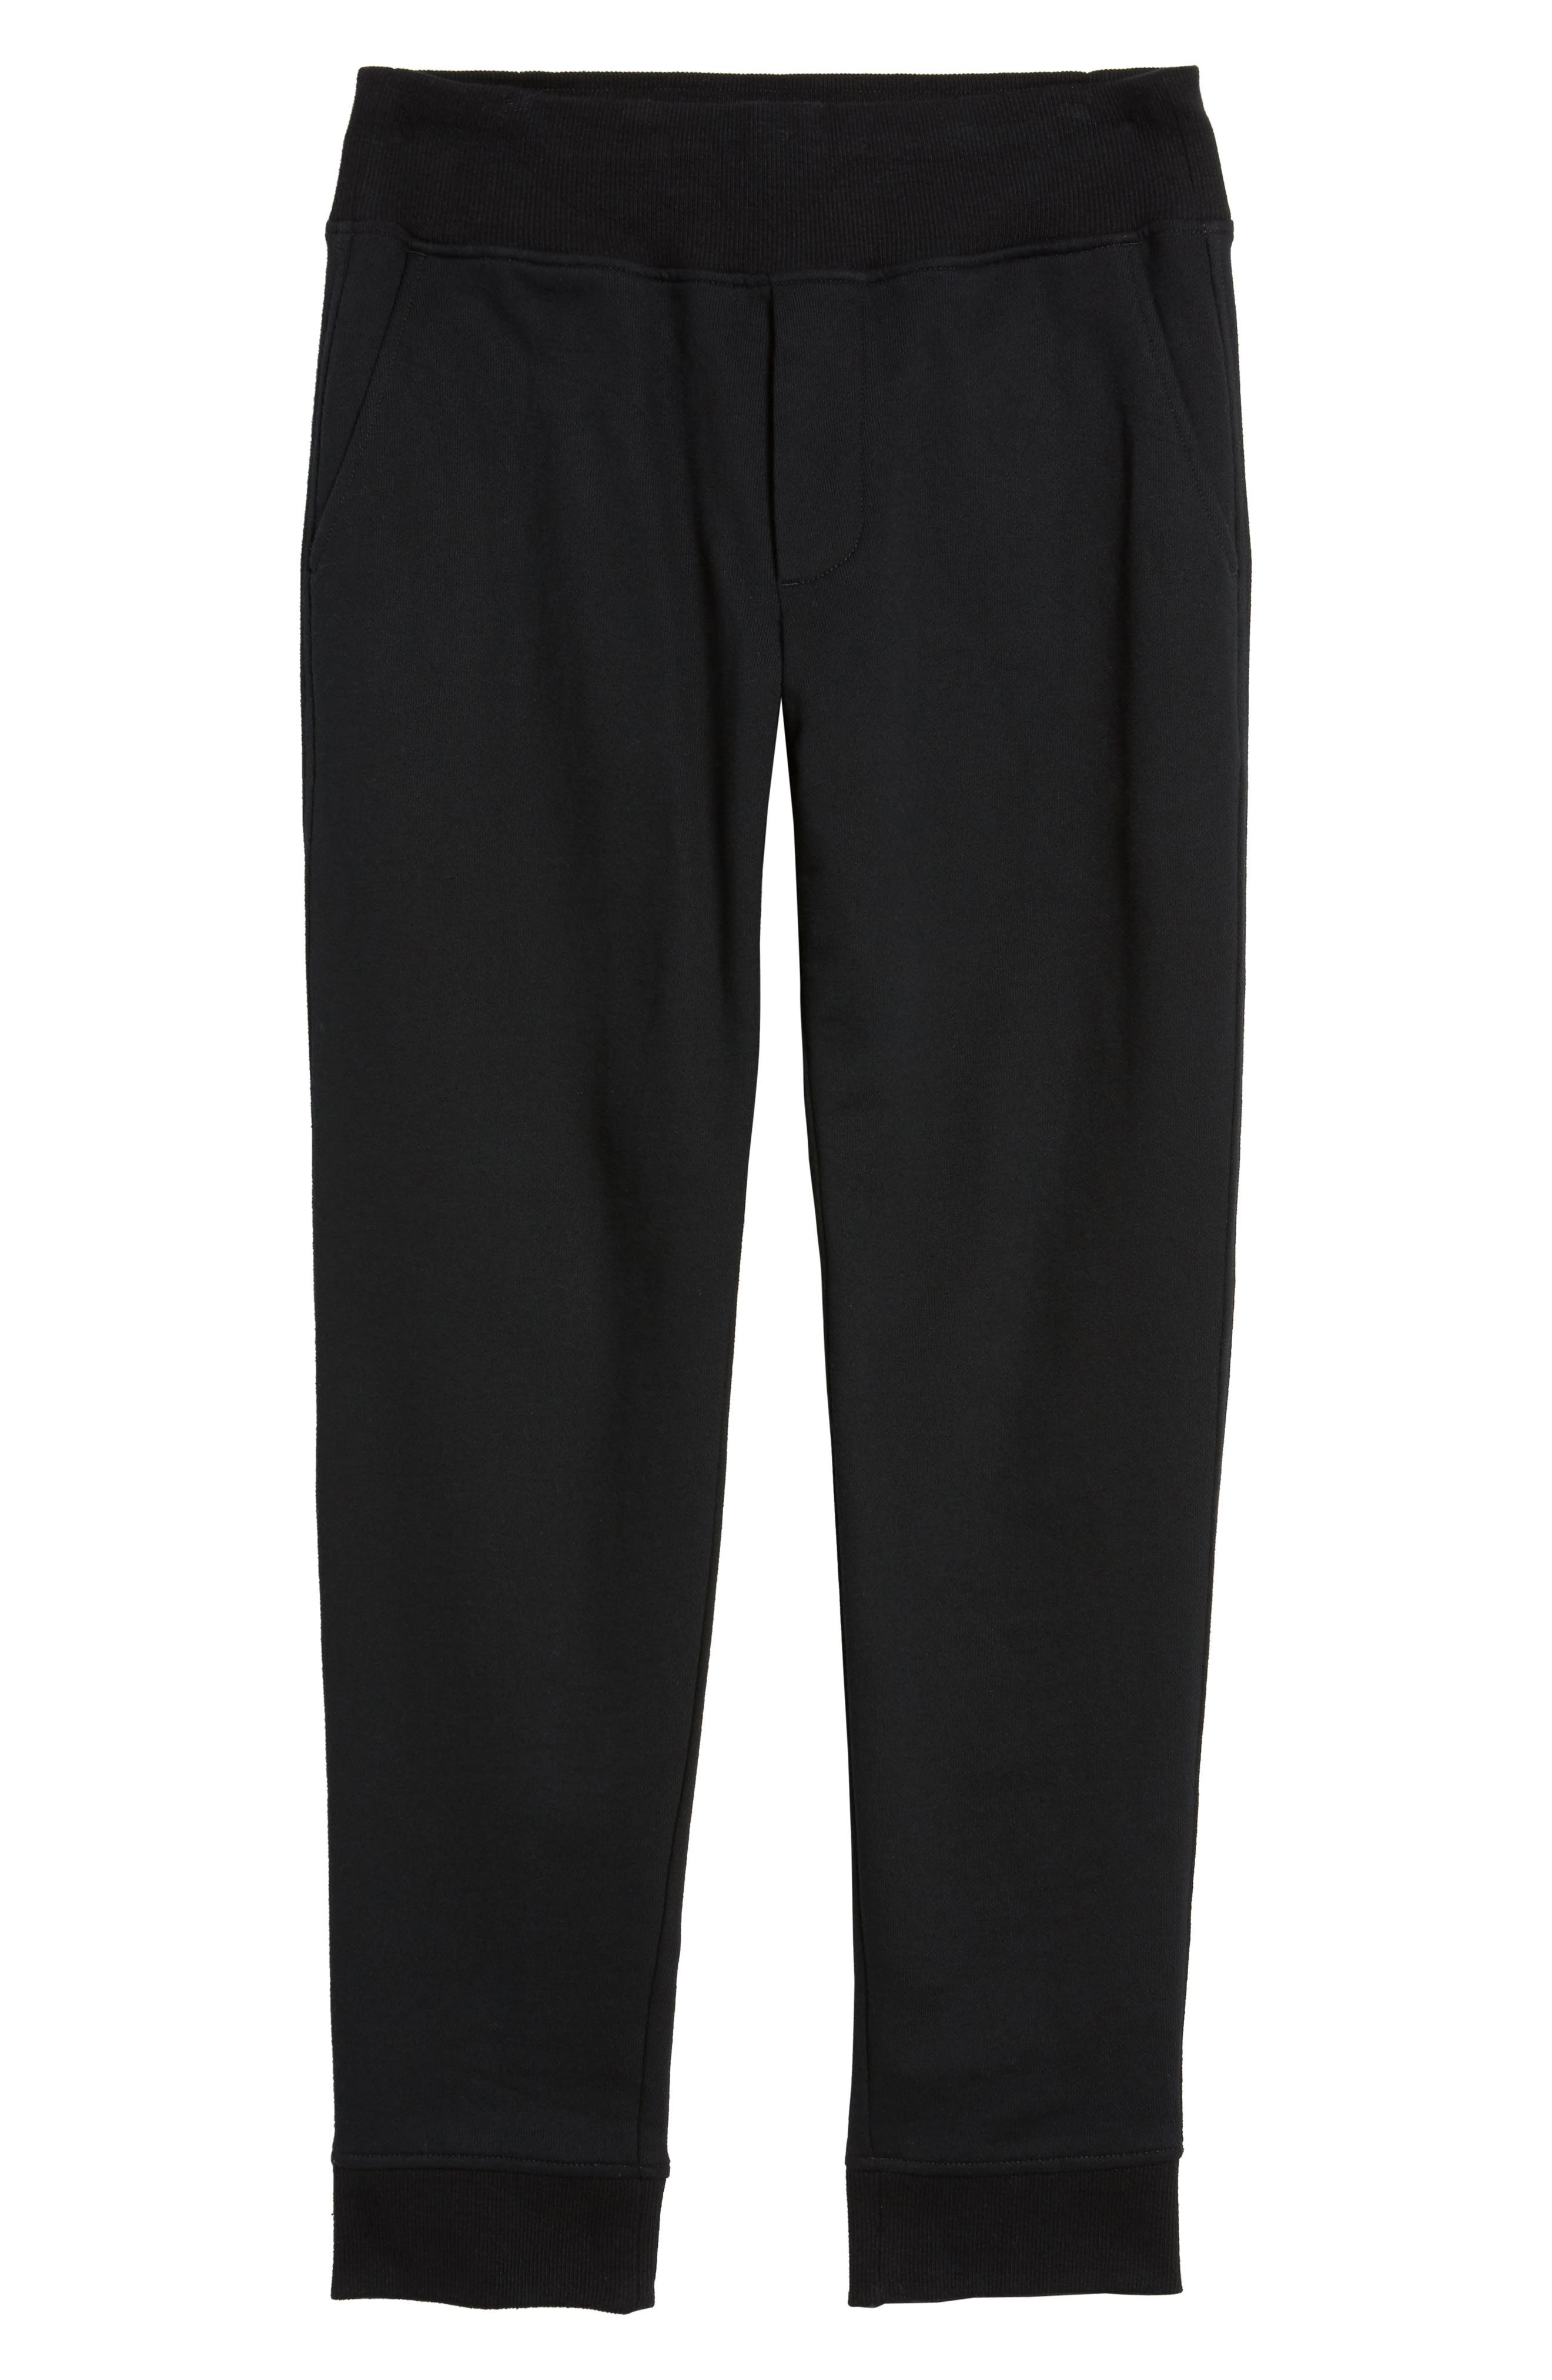 French Terry Regular Fit Sweatpants,                             Alternate thumbnail 6, color,                             Black